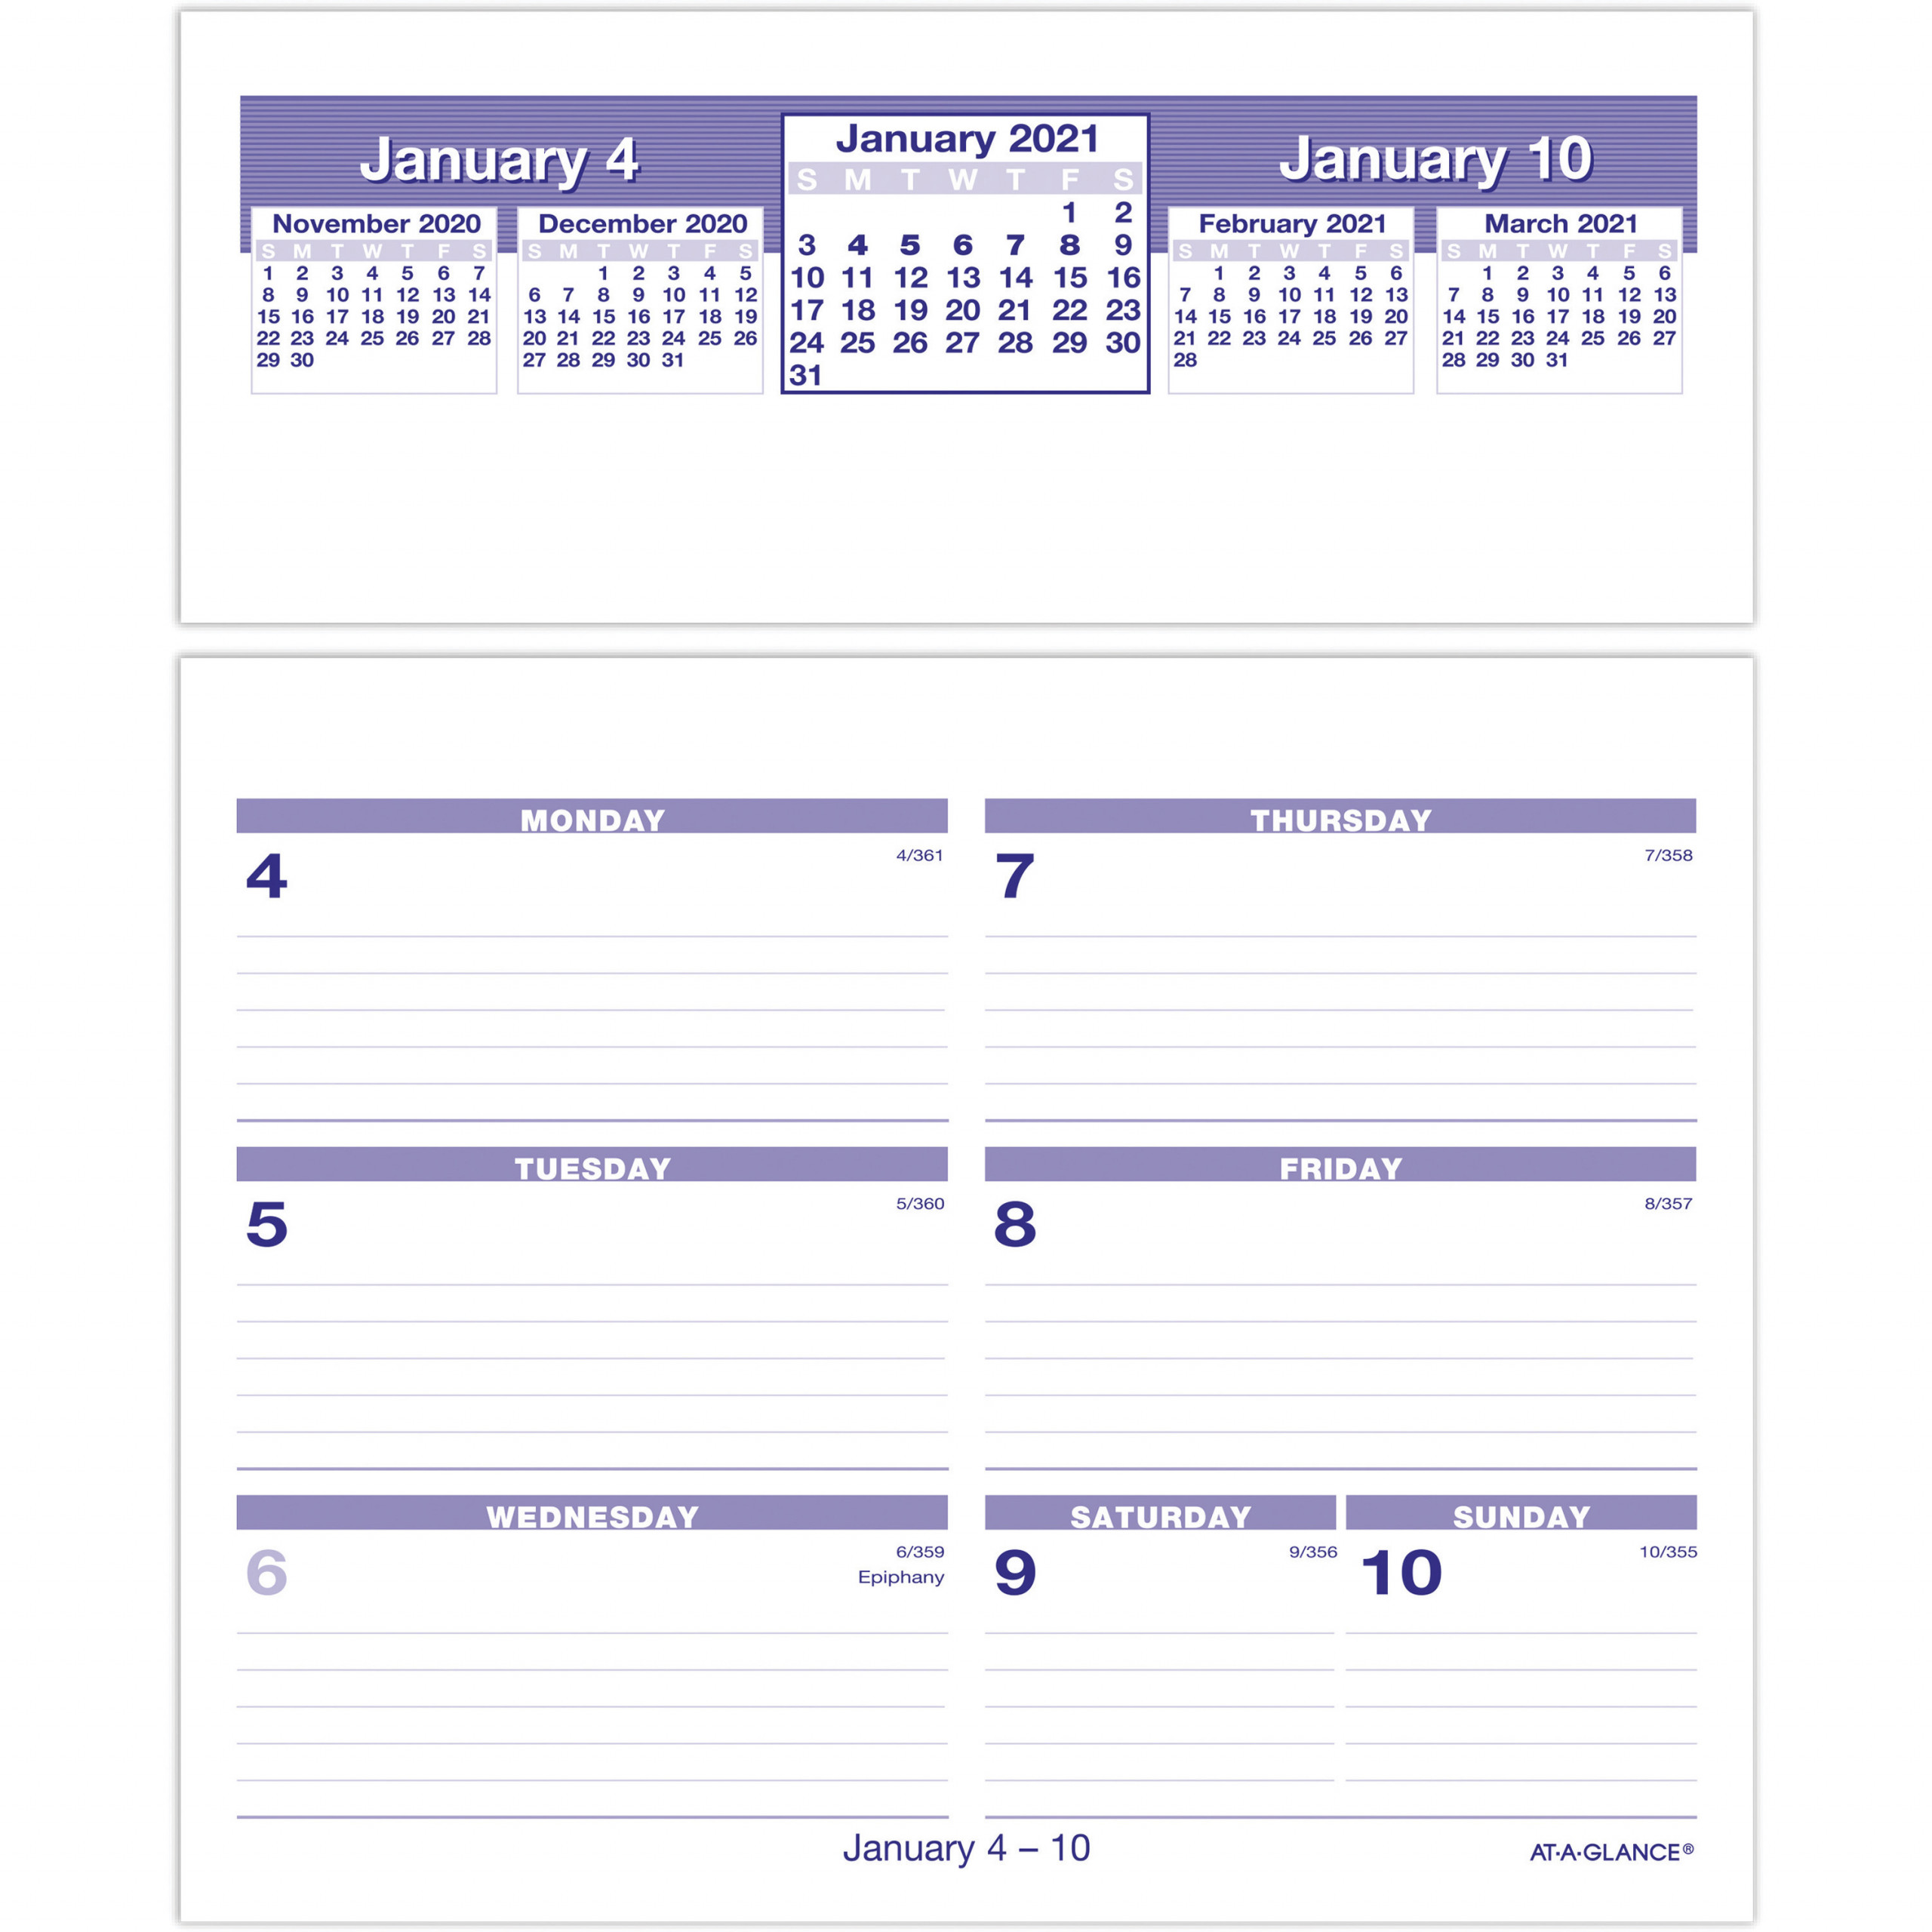 At A Glance Flip A Week Desk Calendar Refill Julian Dates Weekly 1 Year January 2021 till December 2021 1 Week Double Page Layout 5 58 AAGSW705X50x